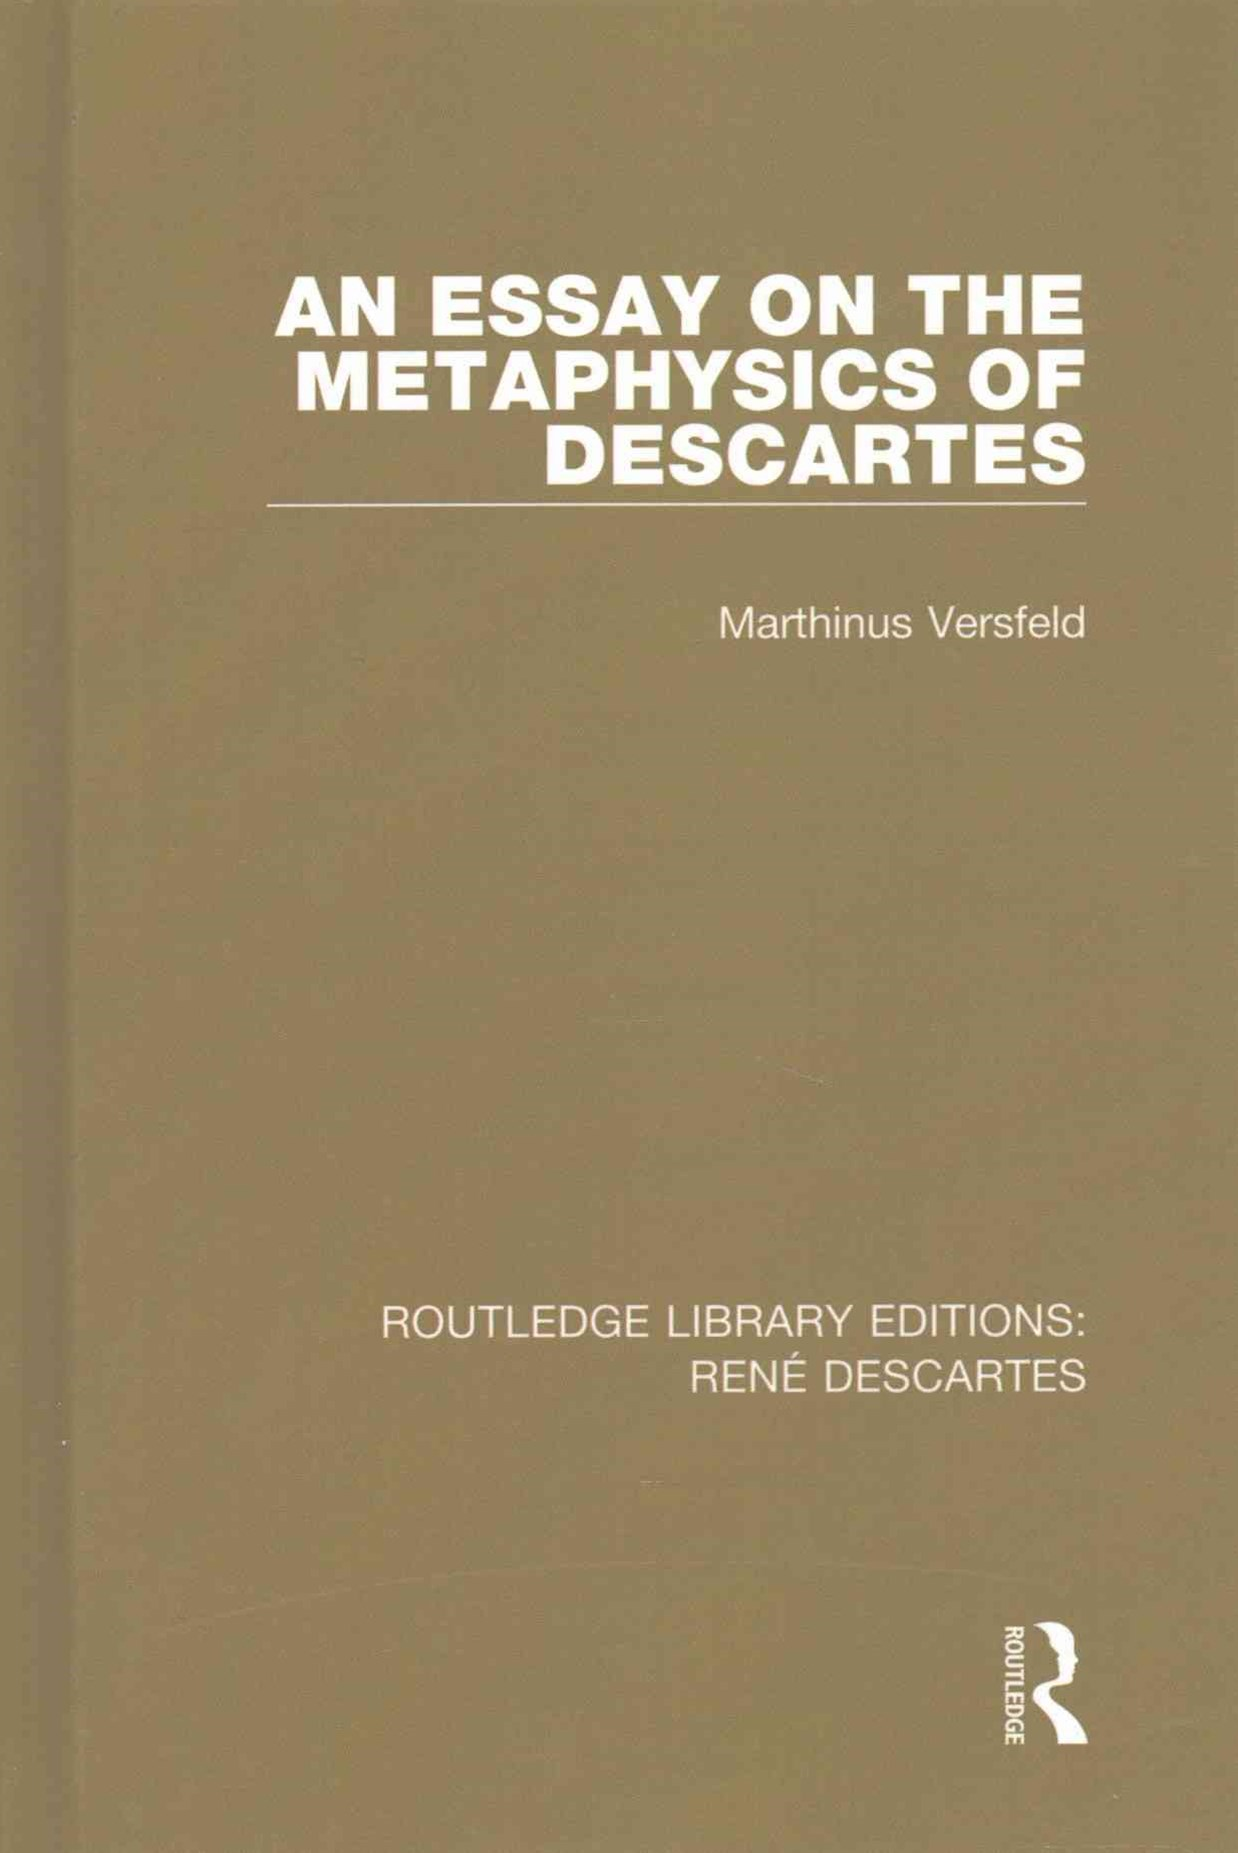 Essay on the Metaphysics of Descartes